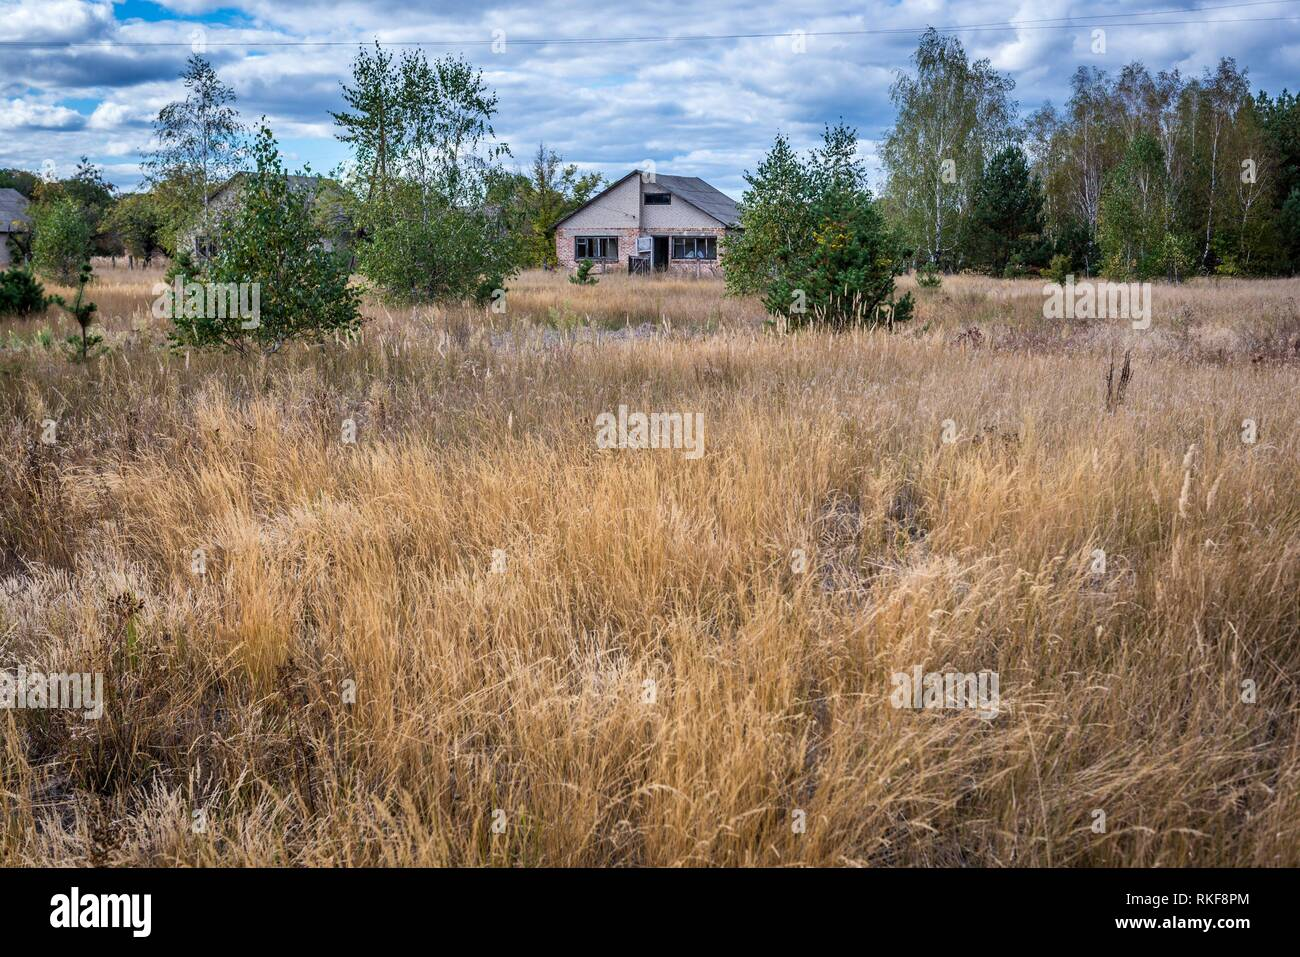 Mashevo abandoned village of Chernobyl Nuclear Power Plant Zone of Alienation area around nuclear reactor disaster in Ukraine. - Stock Image